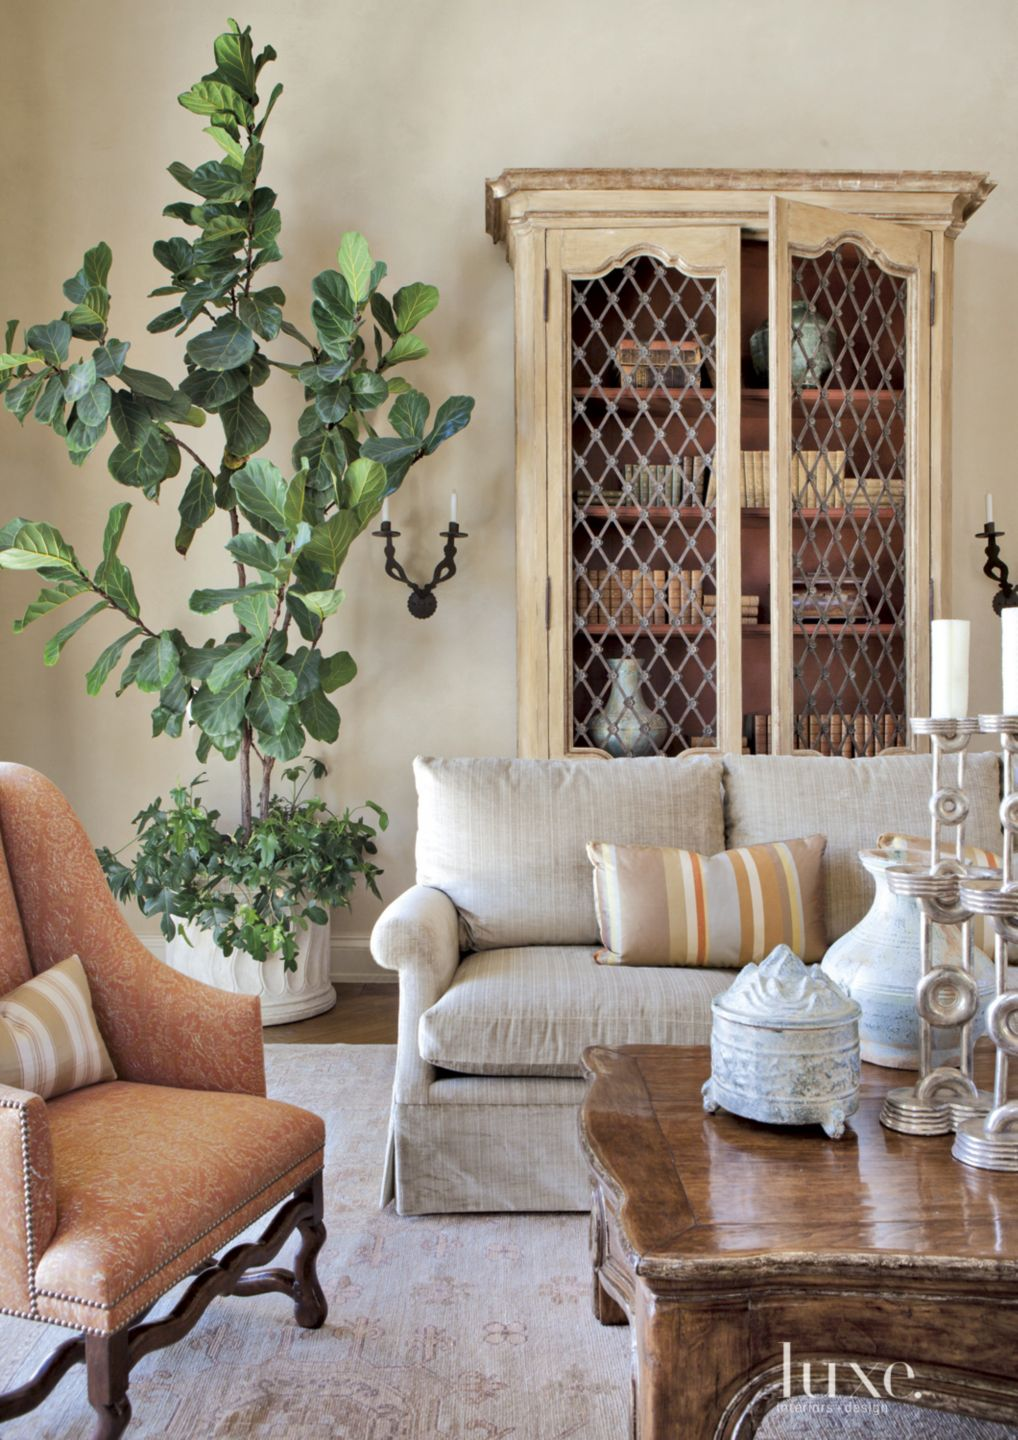 Mediterranean Cream Living Room Detail with Antique Shelving